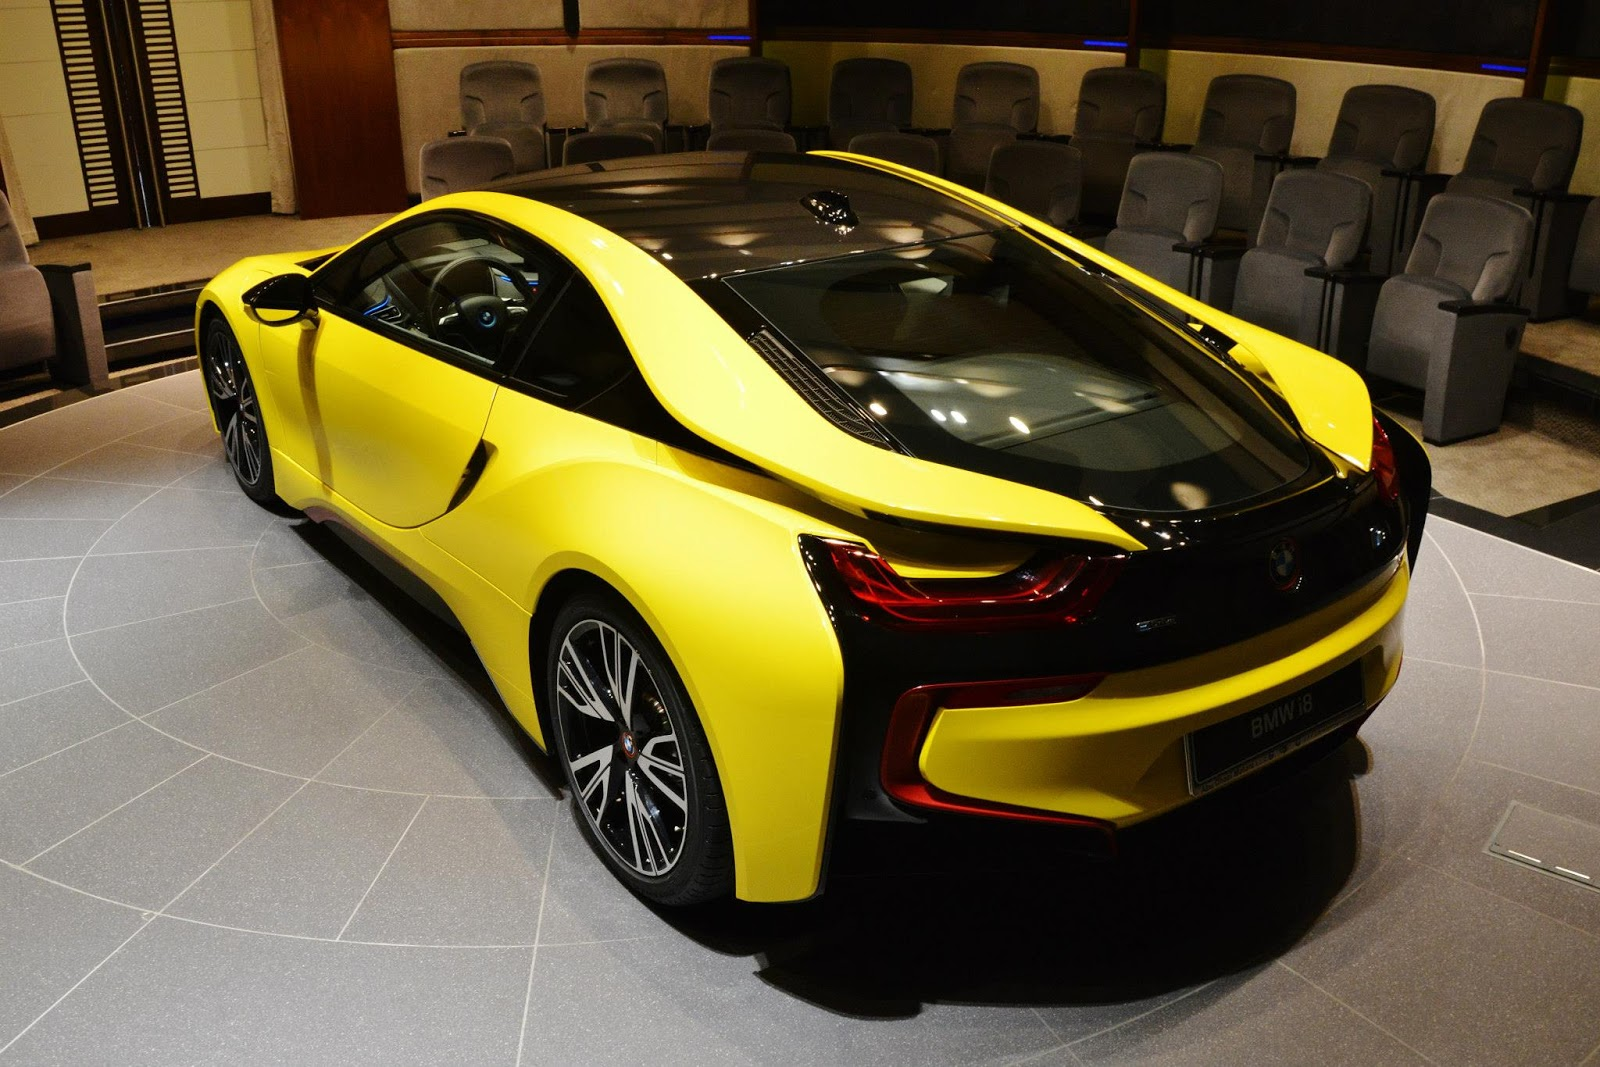 ... Coupe Series Black Bmw I8 : Bmw I8 Yellow And Black U2013 New Cars Gallery  ...